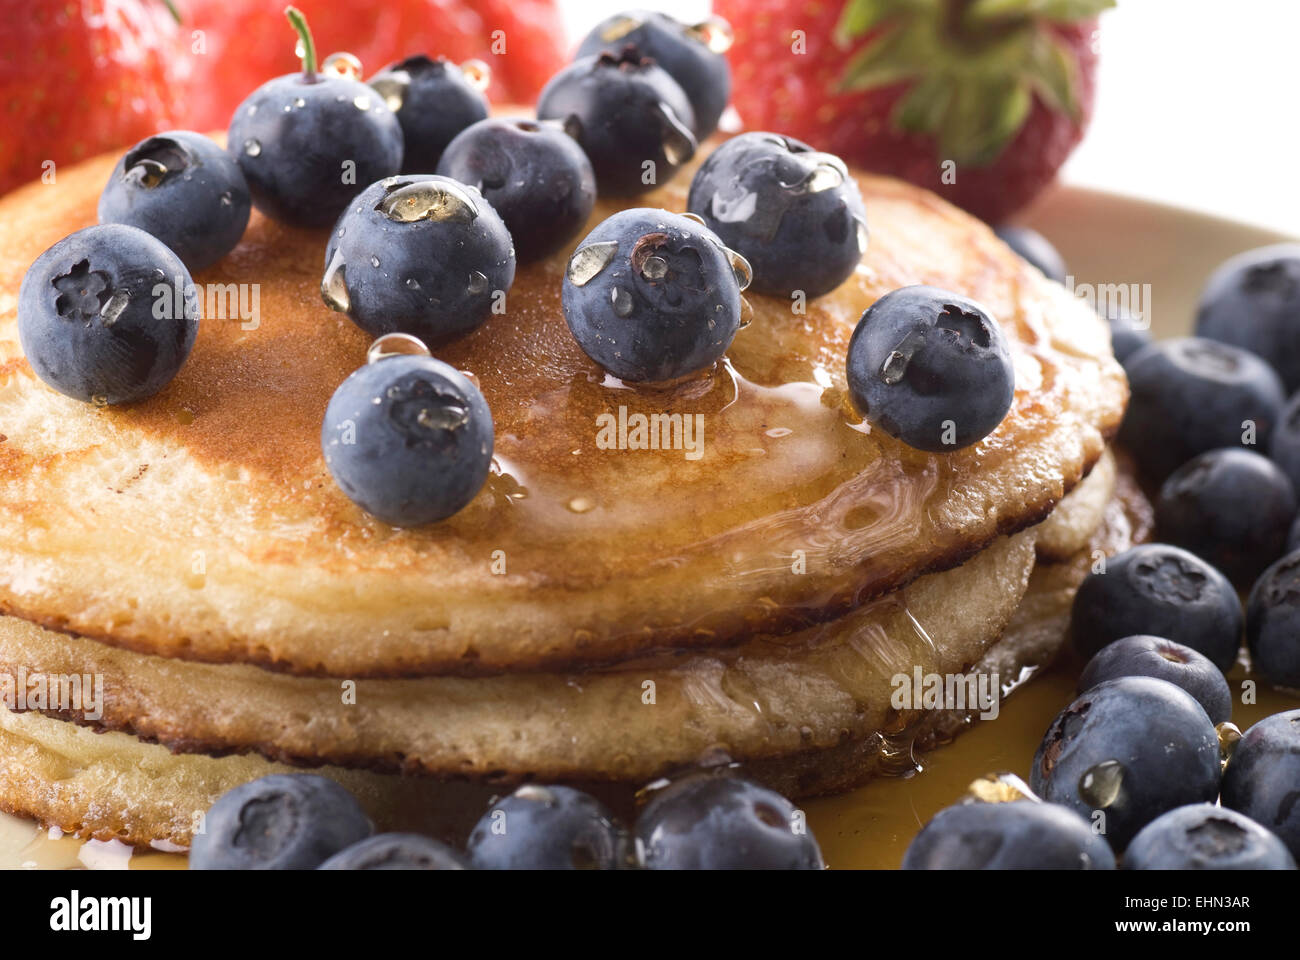 Pancakes with fresh blueberries and syrup on a plate.  Strawberries in the background. Stock Photo